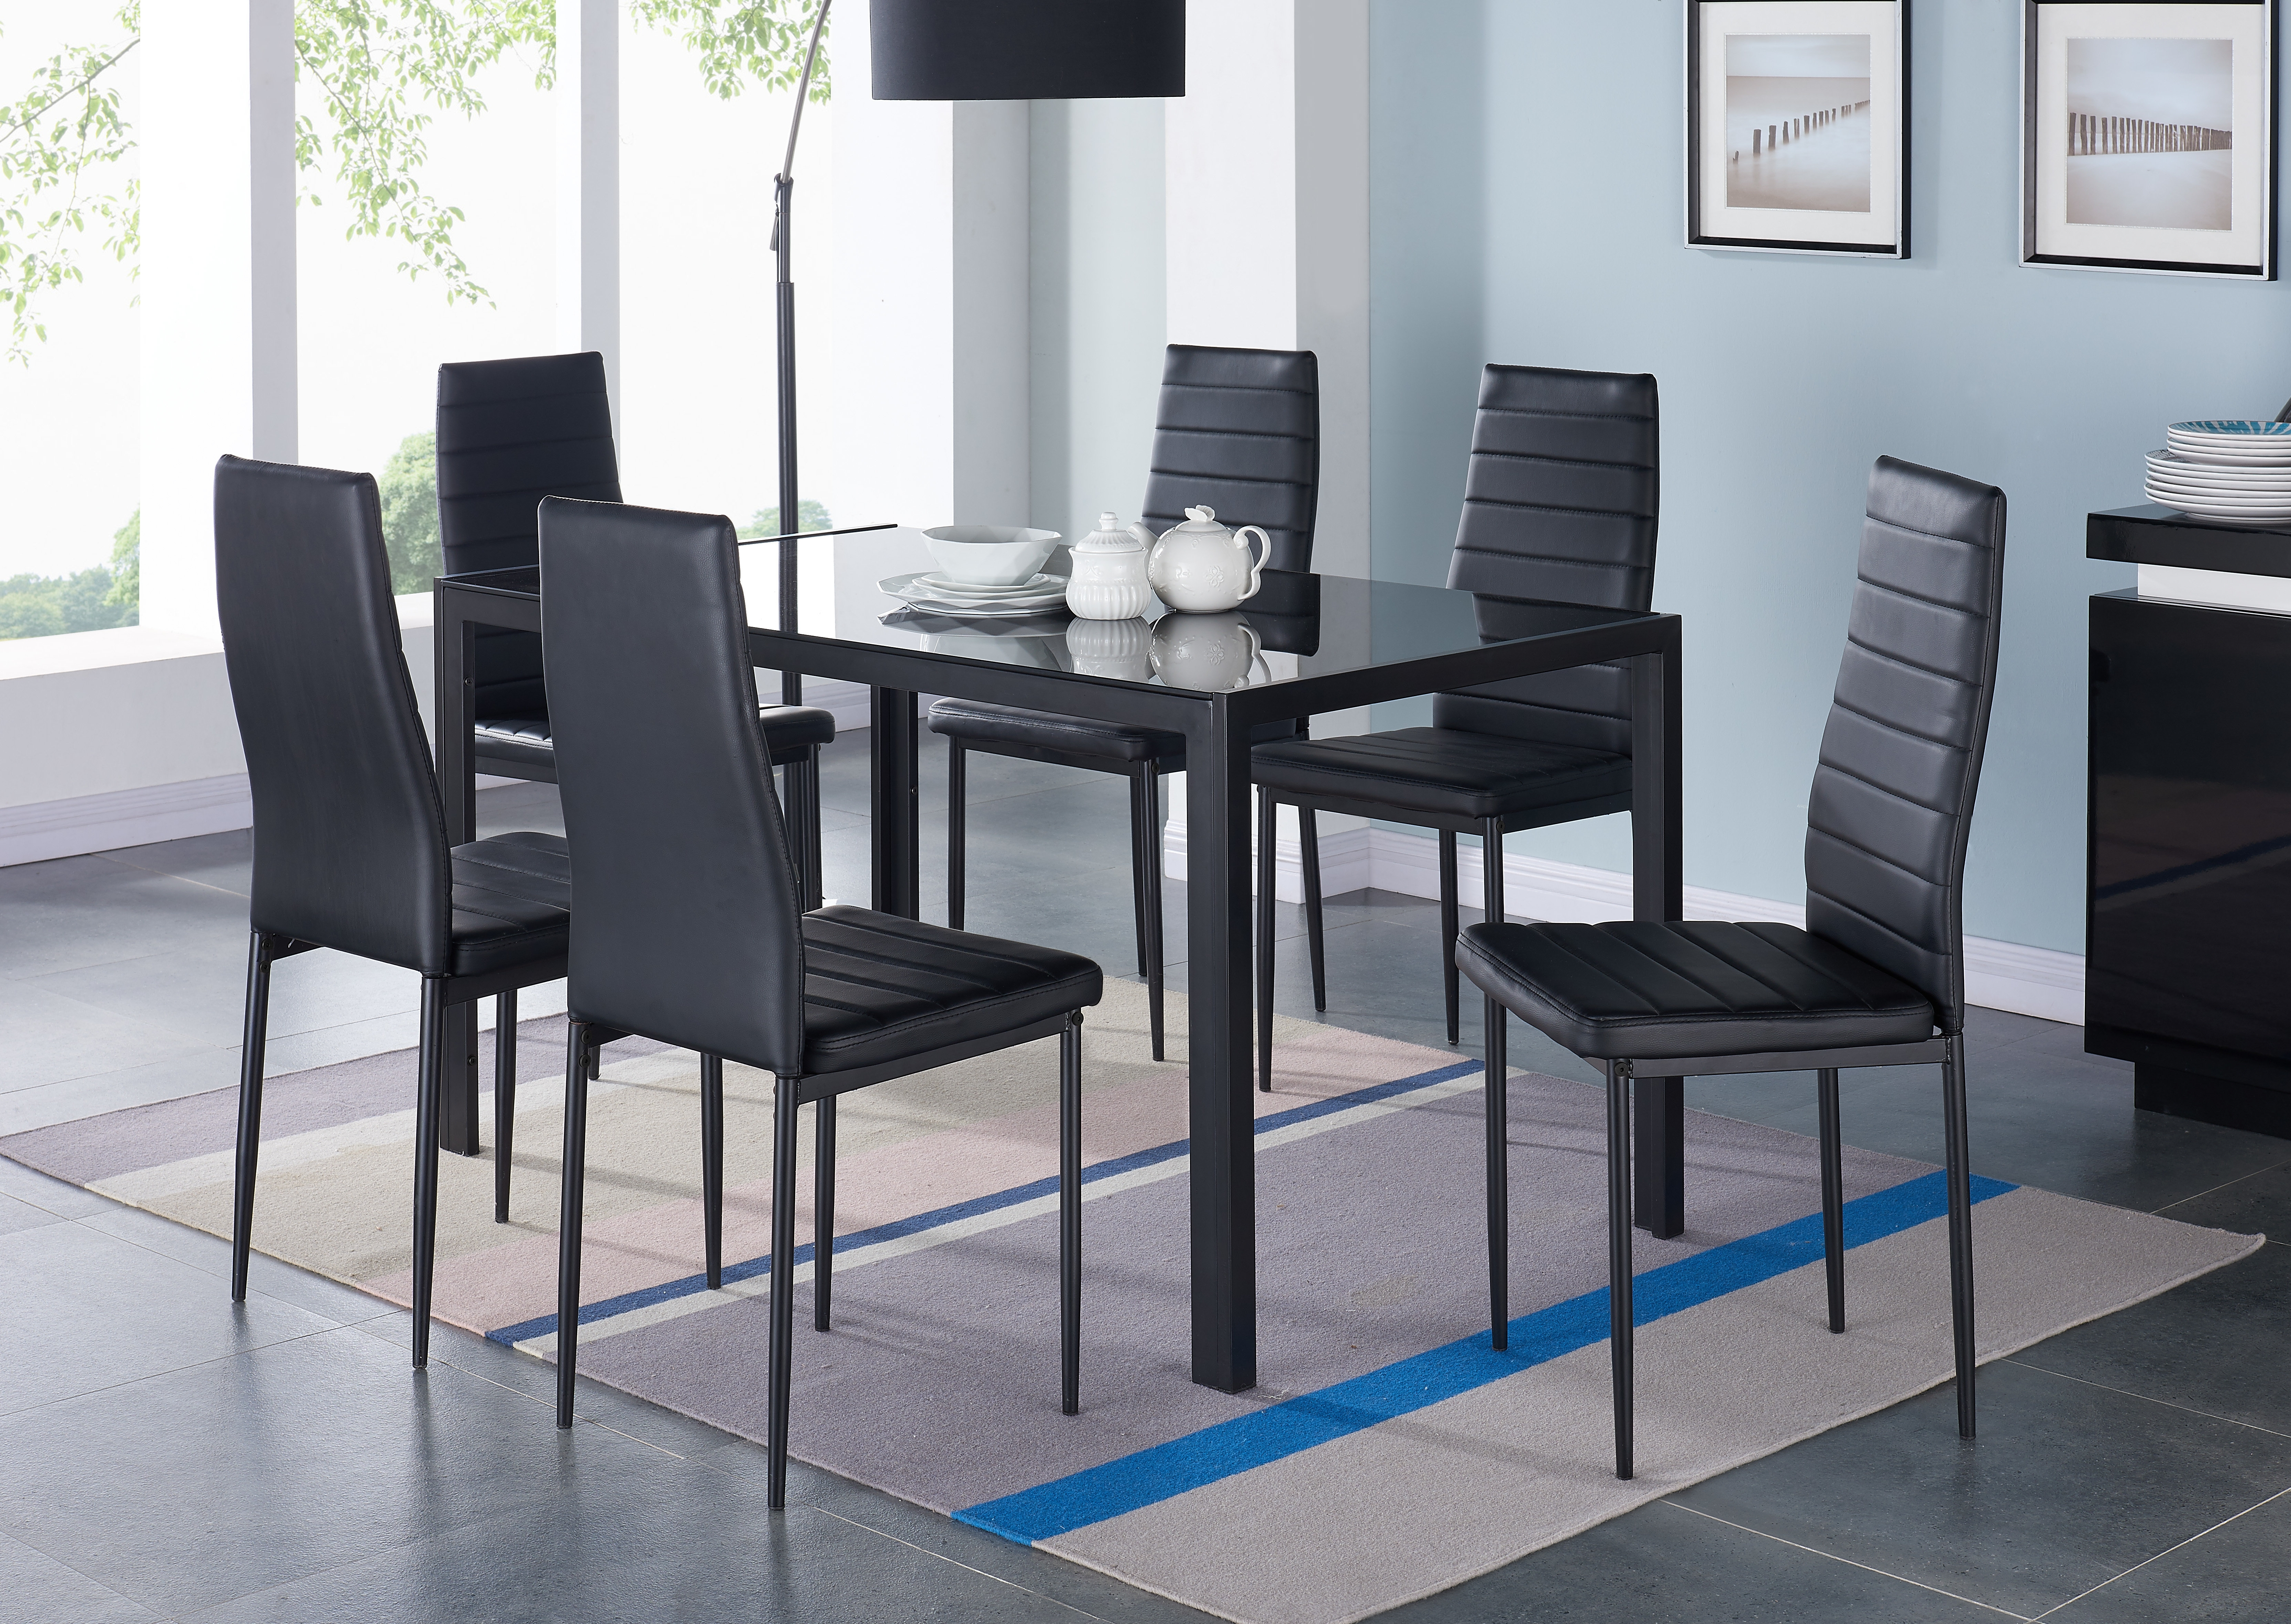 Orren Ellis Umber Glass Dining Table Set With 6 Chairs (View 18 of 25)